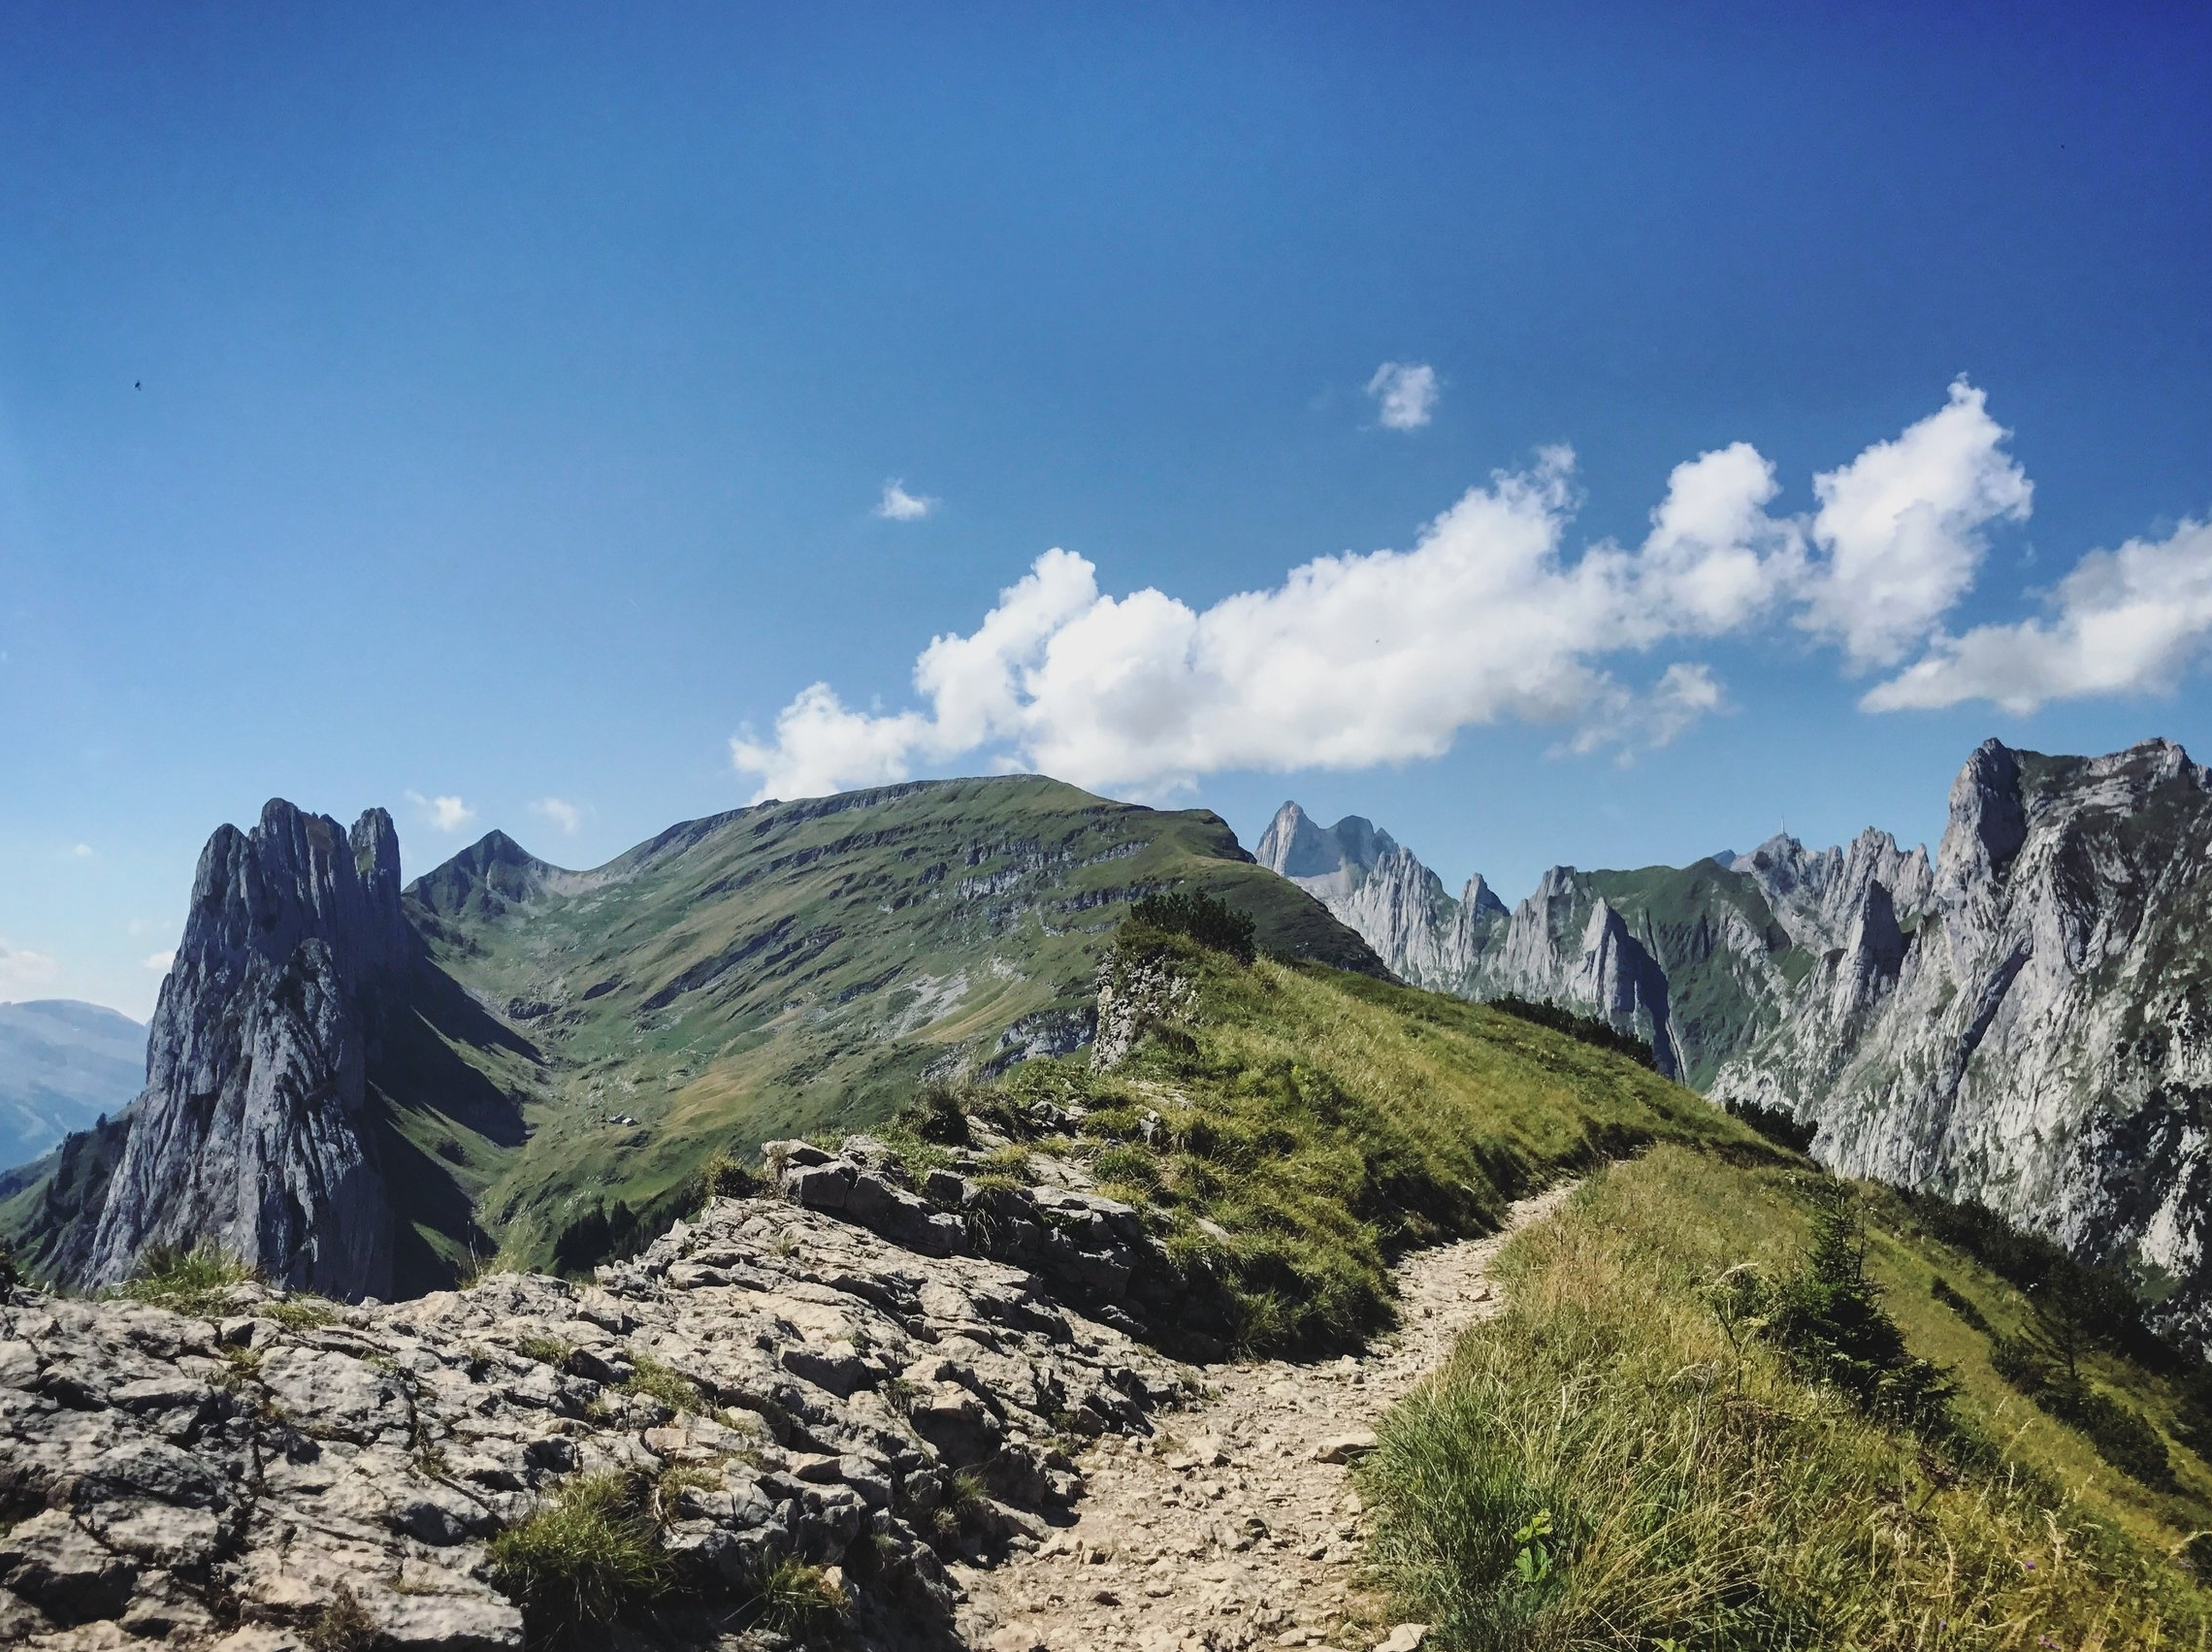 MiFID II Risk Profiles: Is it like hiking in the Alpine mountain trails?